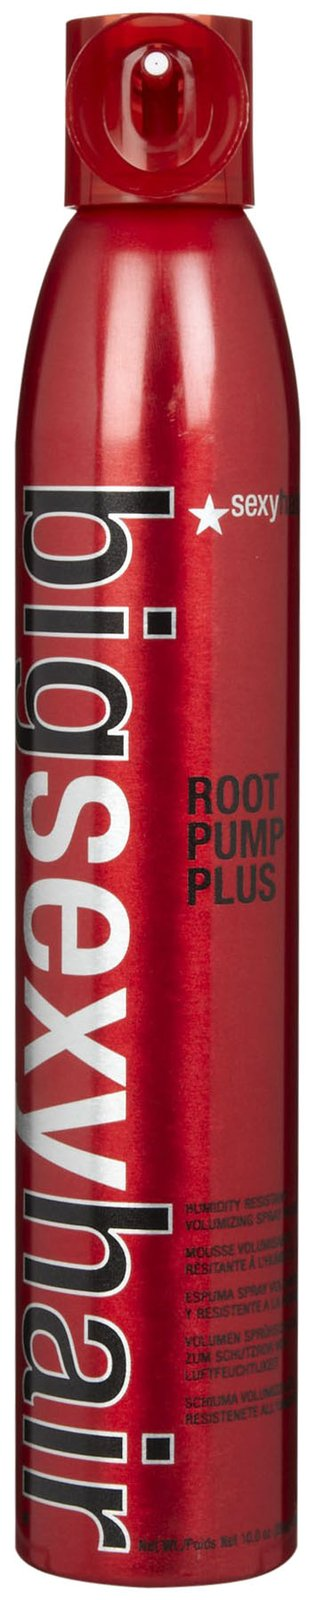 Big Sexy Hair Root Pump Plus Volumizing Spray Mousse